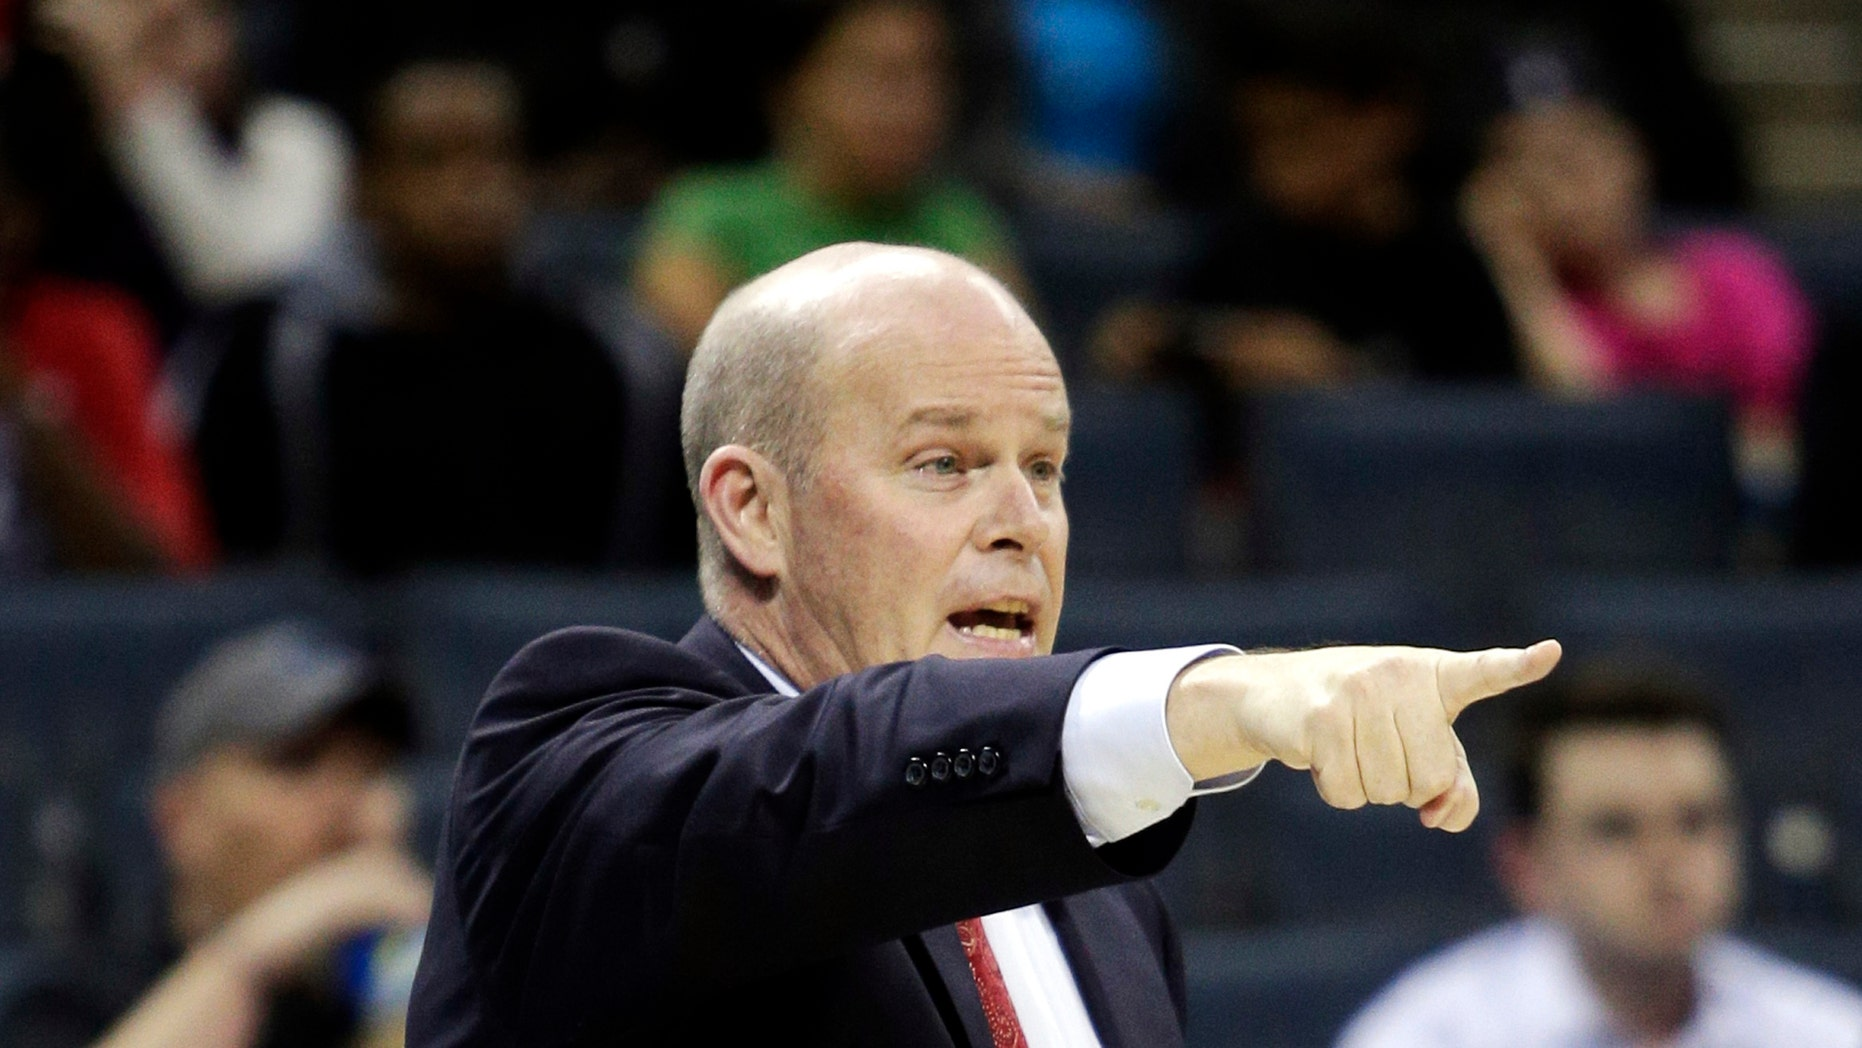 Charlotte Bobcats coach Steve Clifford directs his team as they play the Toronto Raptors in the second half of an NBA basketball game in Charlotte, N.C., Wednesday, Nov. 6, 2013. Charlotte won 92-90. (AP Photo/Nell Redmond)